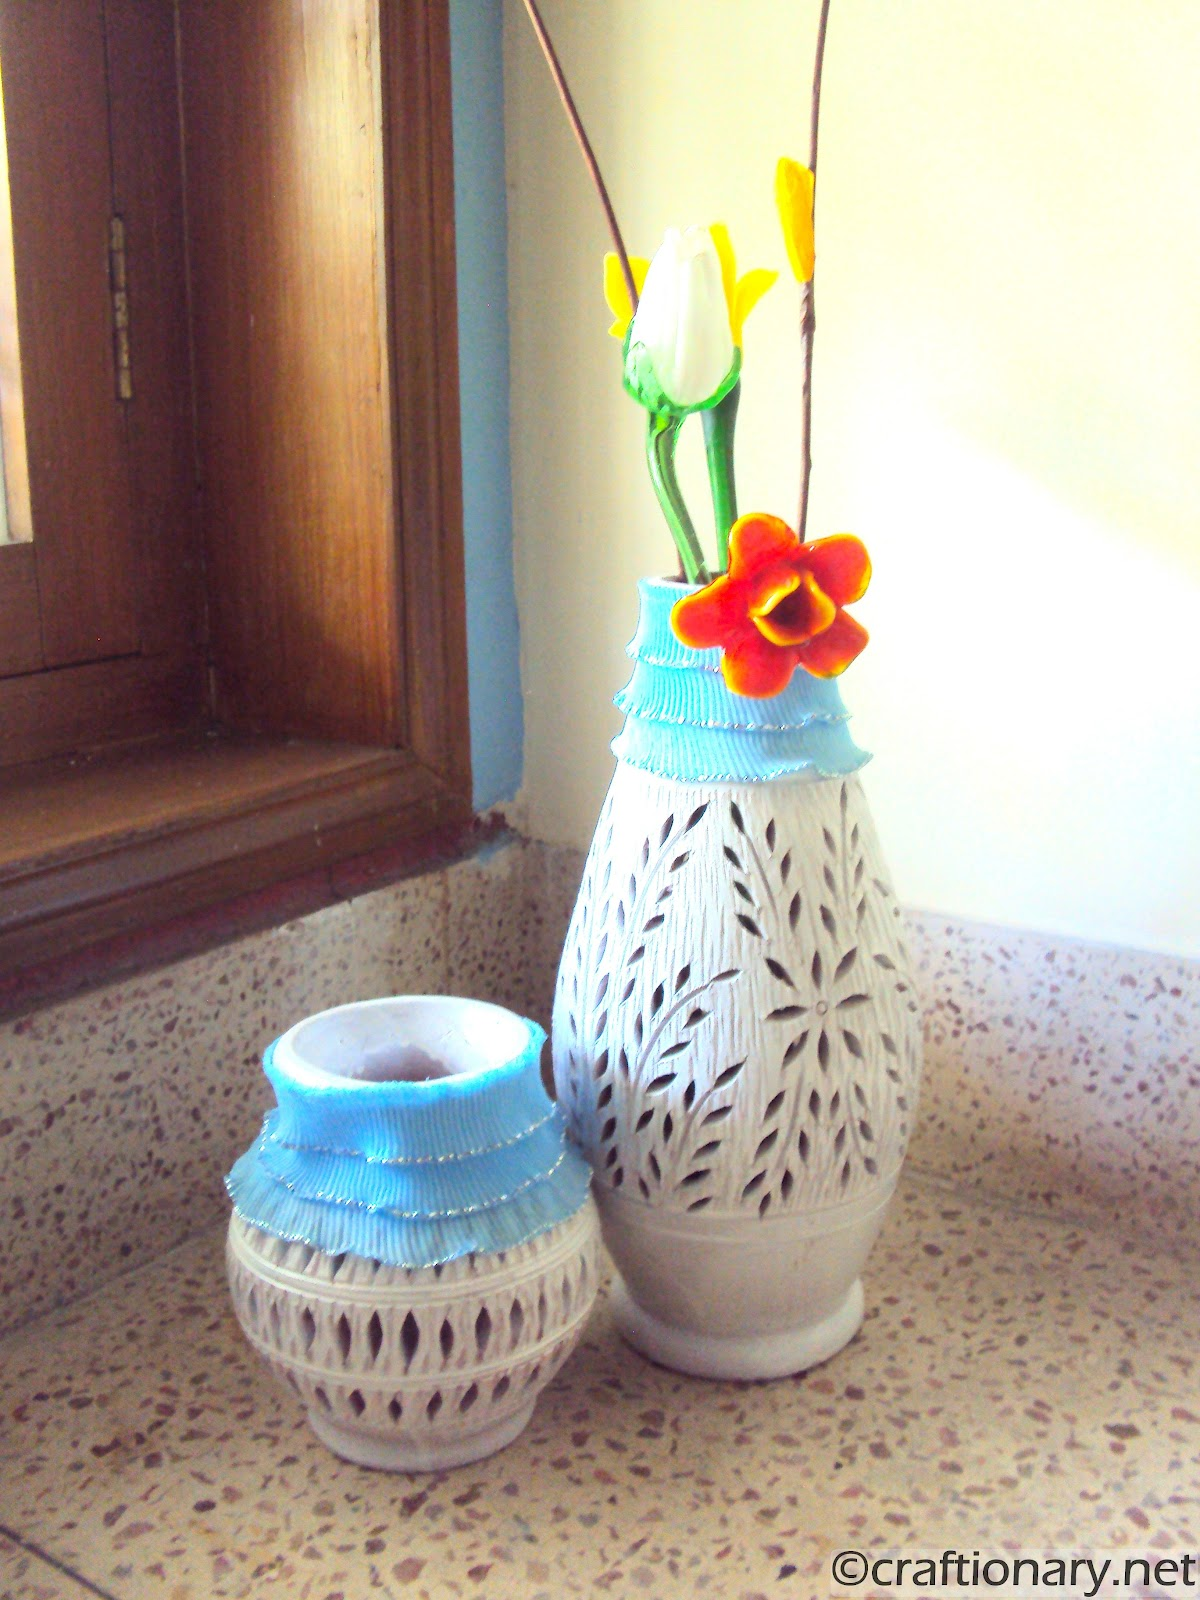 Craftionary for Household decorative items